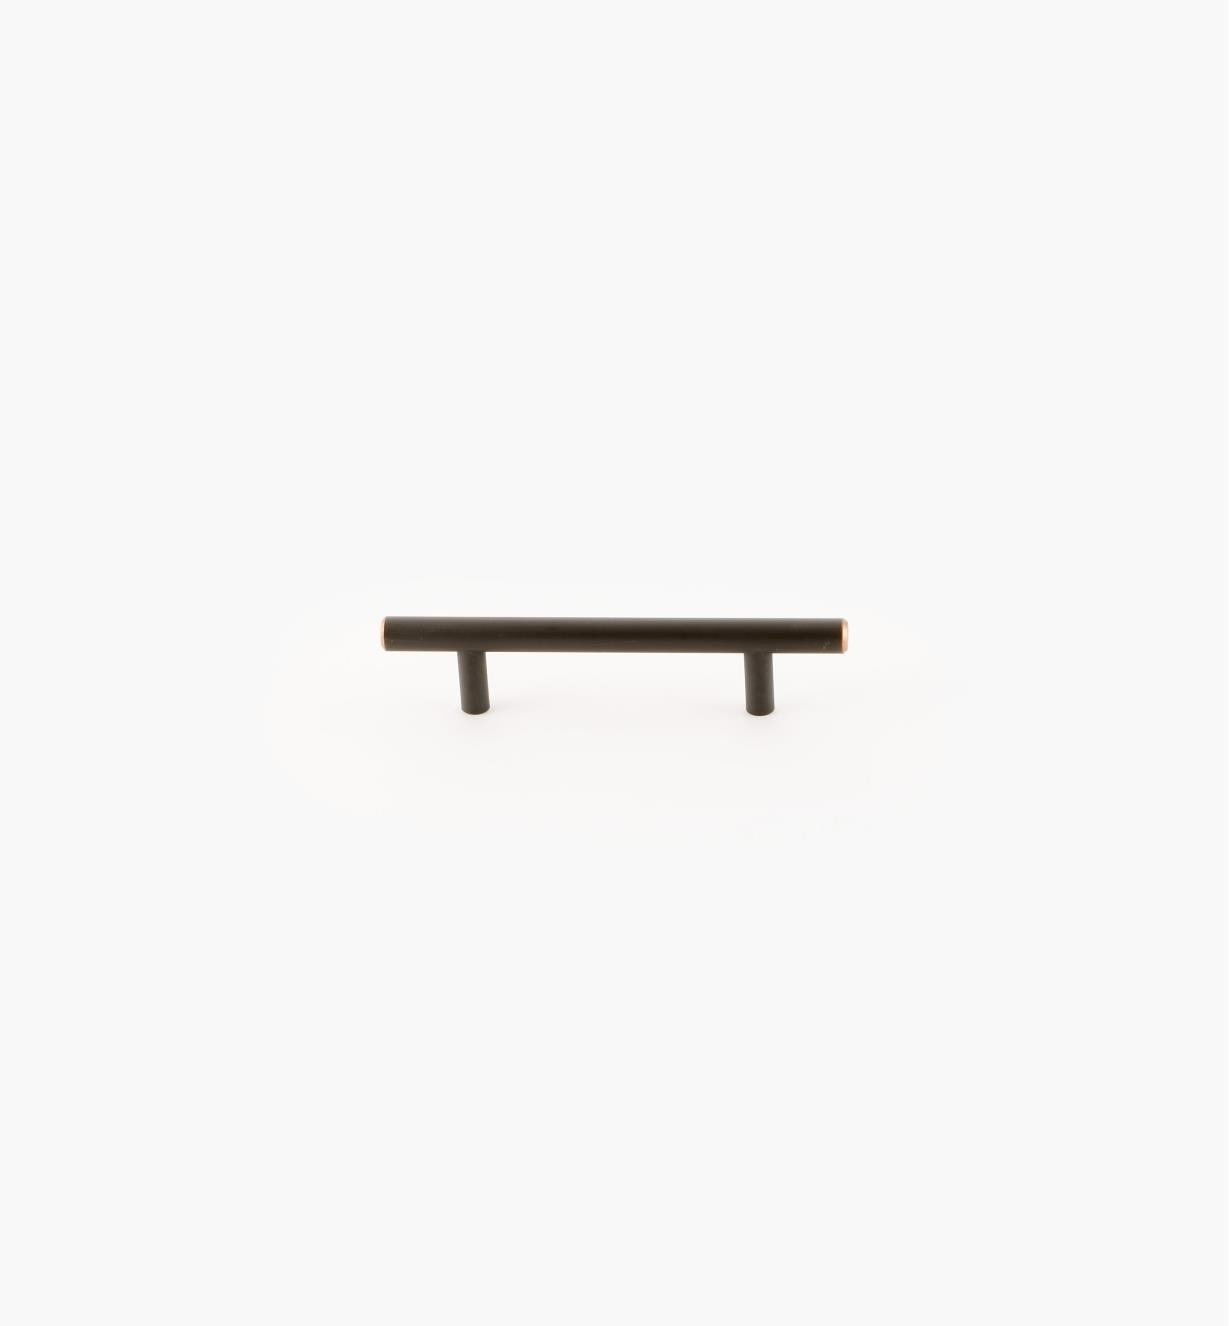 02A1486 - Bar Oil-Rubbed Bronze 96mm (156mm) Pull, each